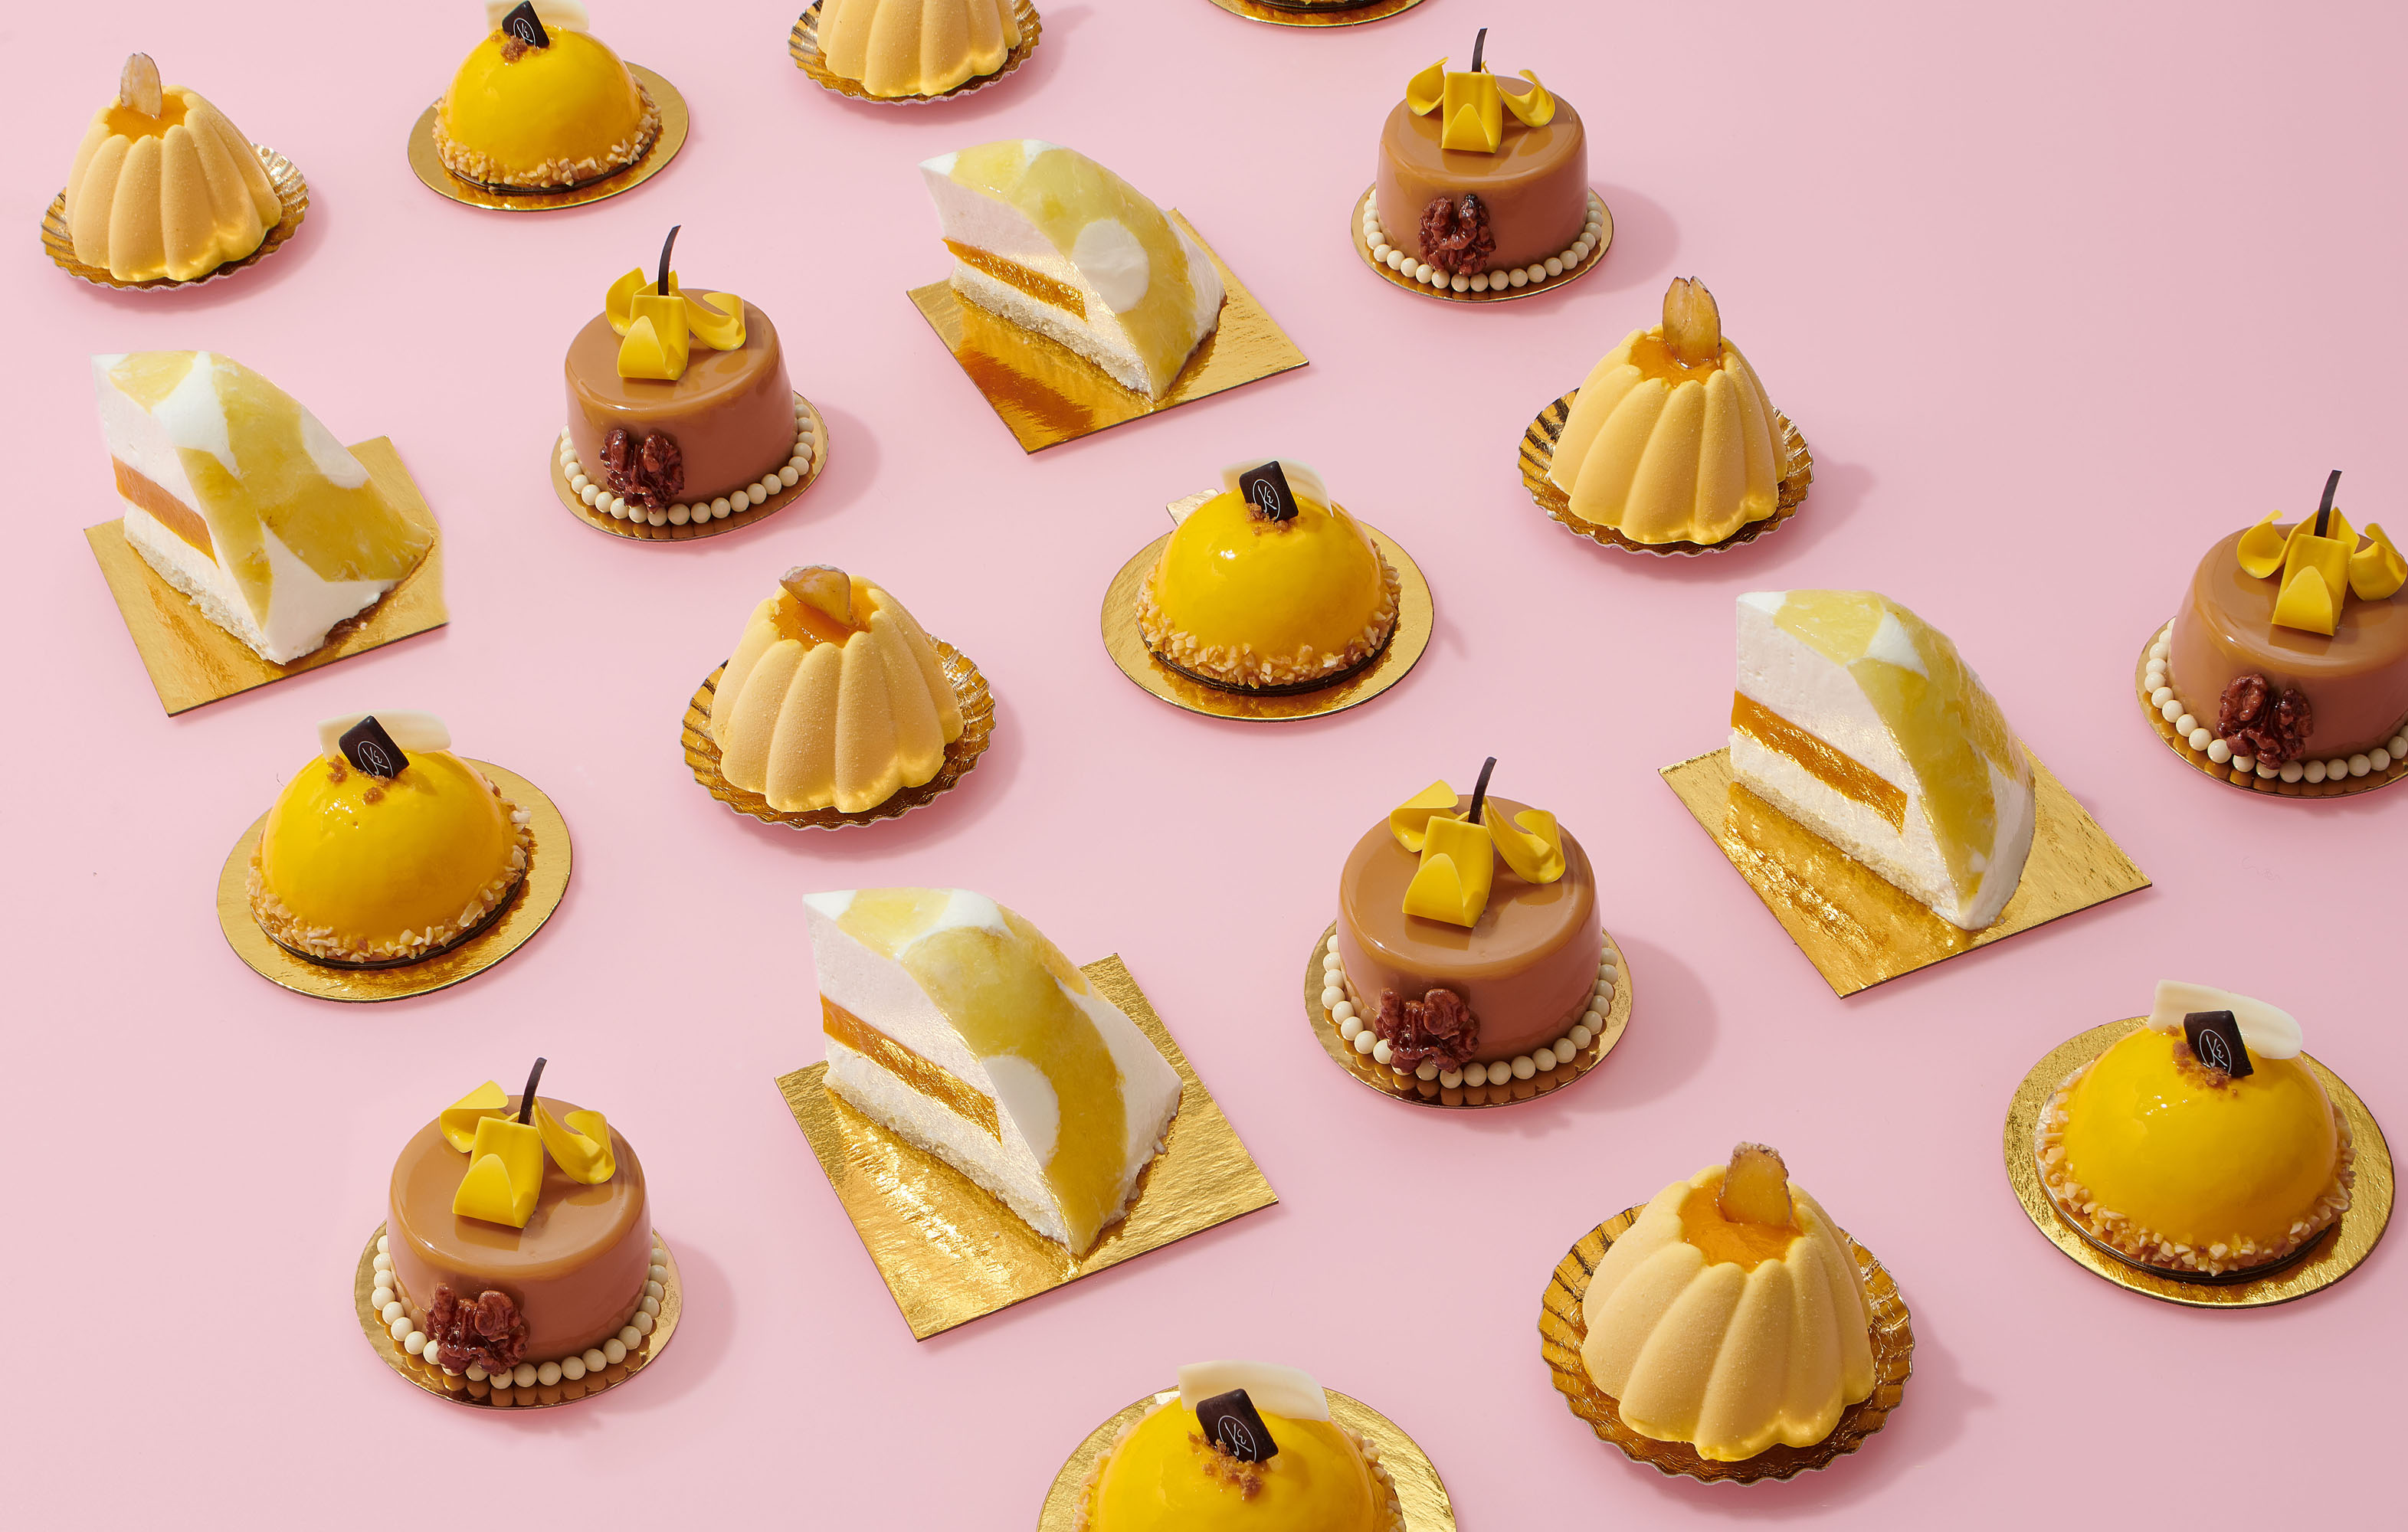 Mini Wedding Desserts Your Guests Will Go Crazy Over